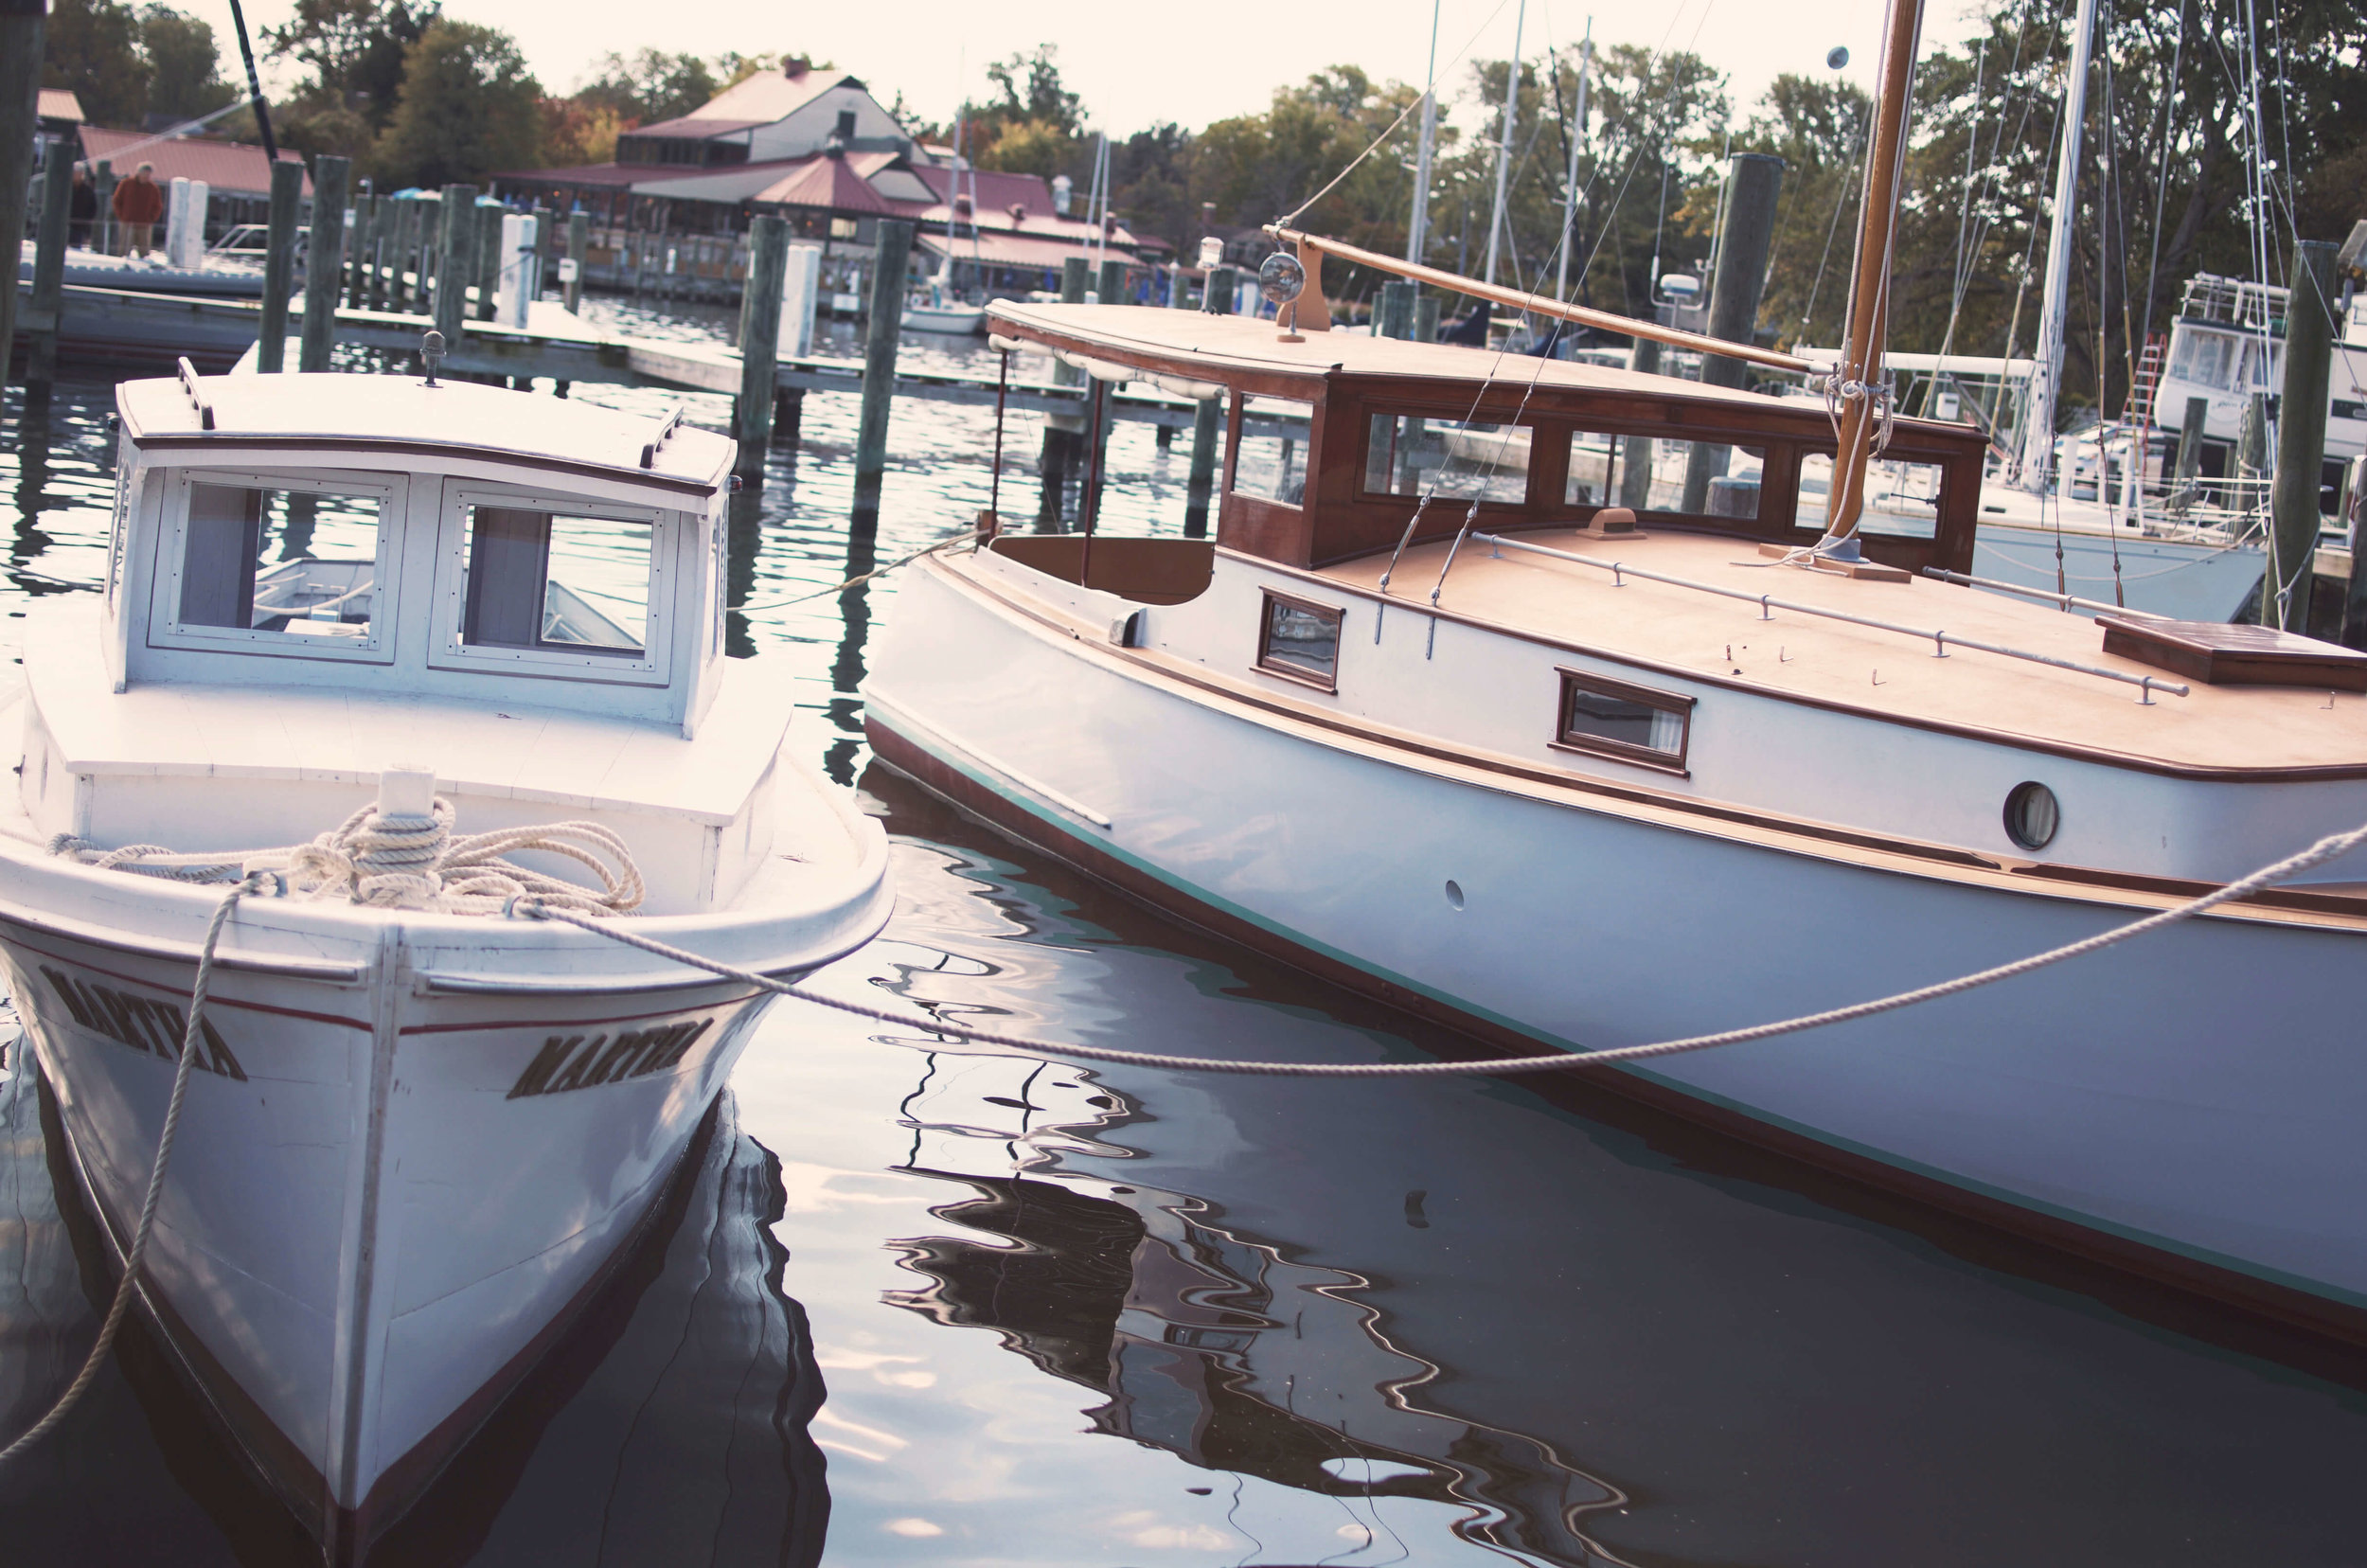 St. Michaels, MD by Sam Spahr